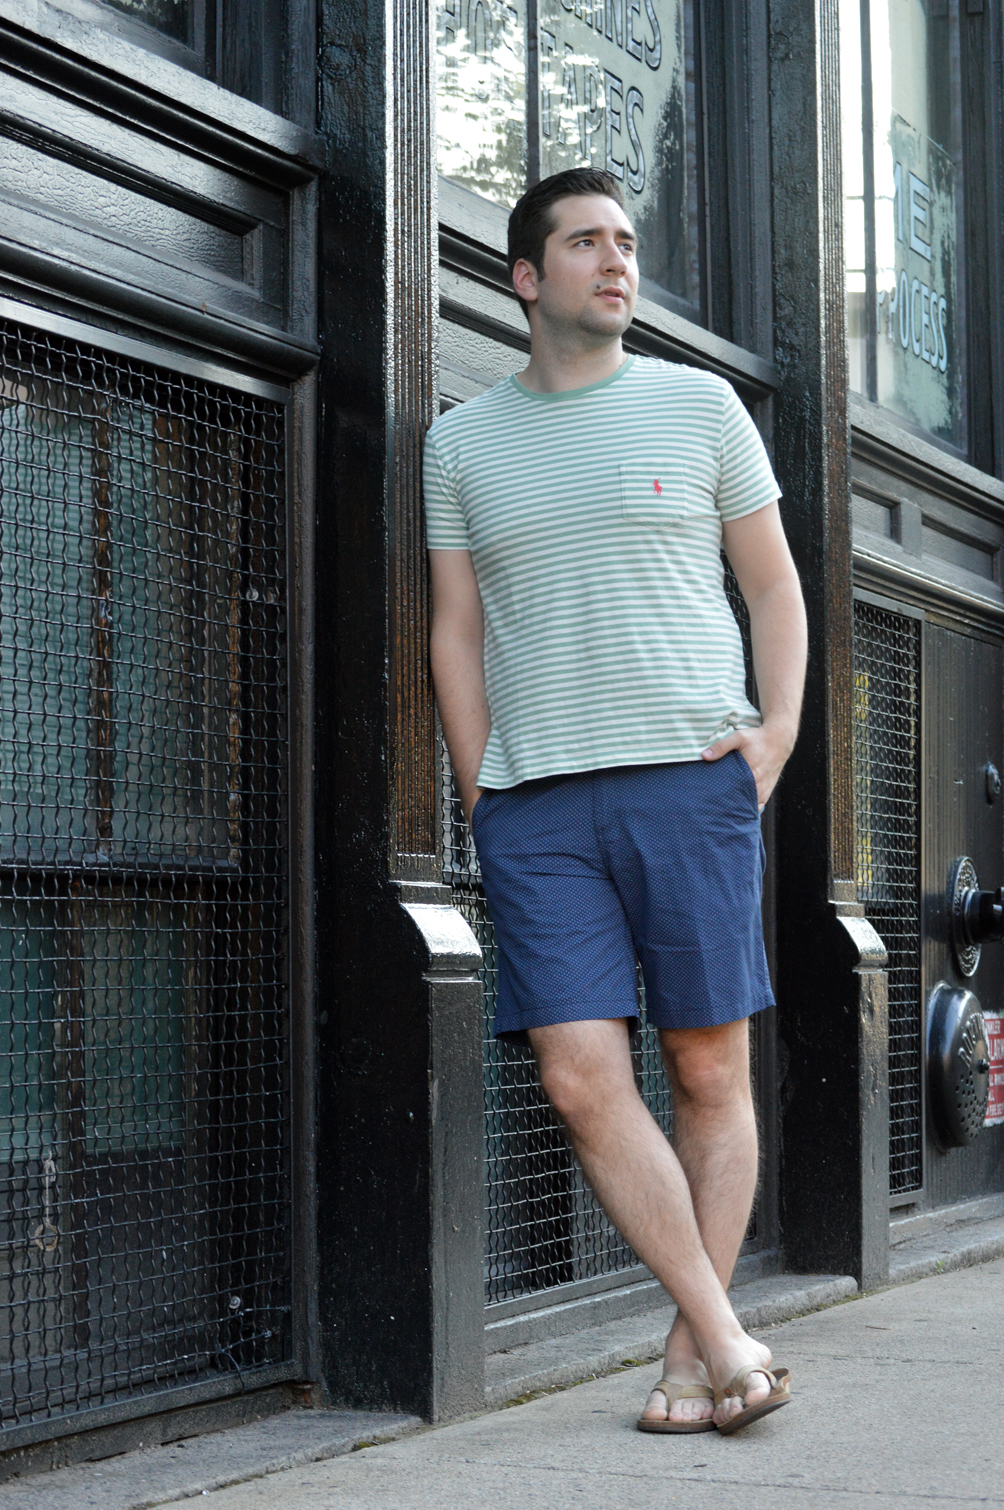 men's striped and patterned casual summer outfit